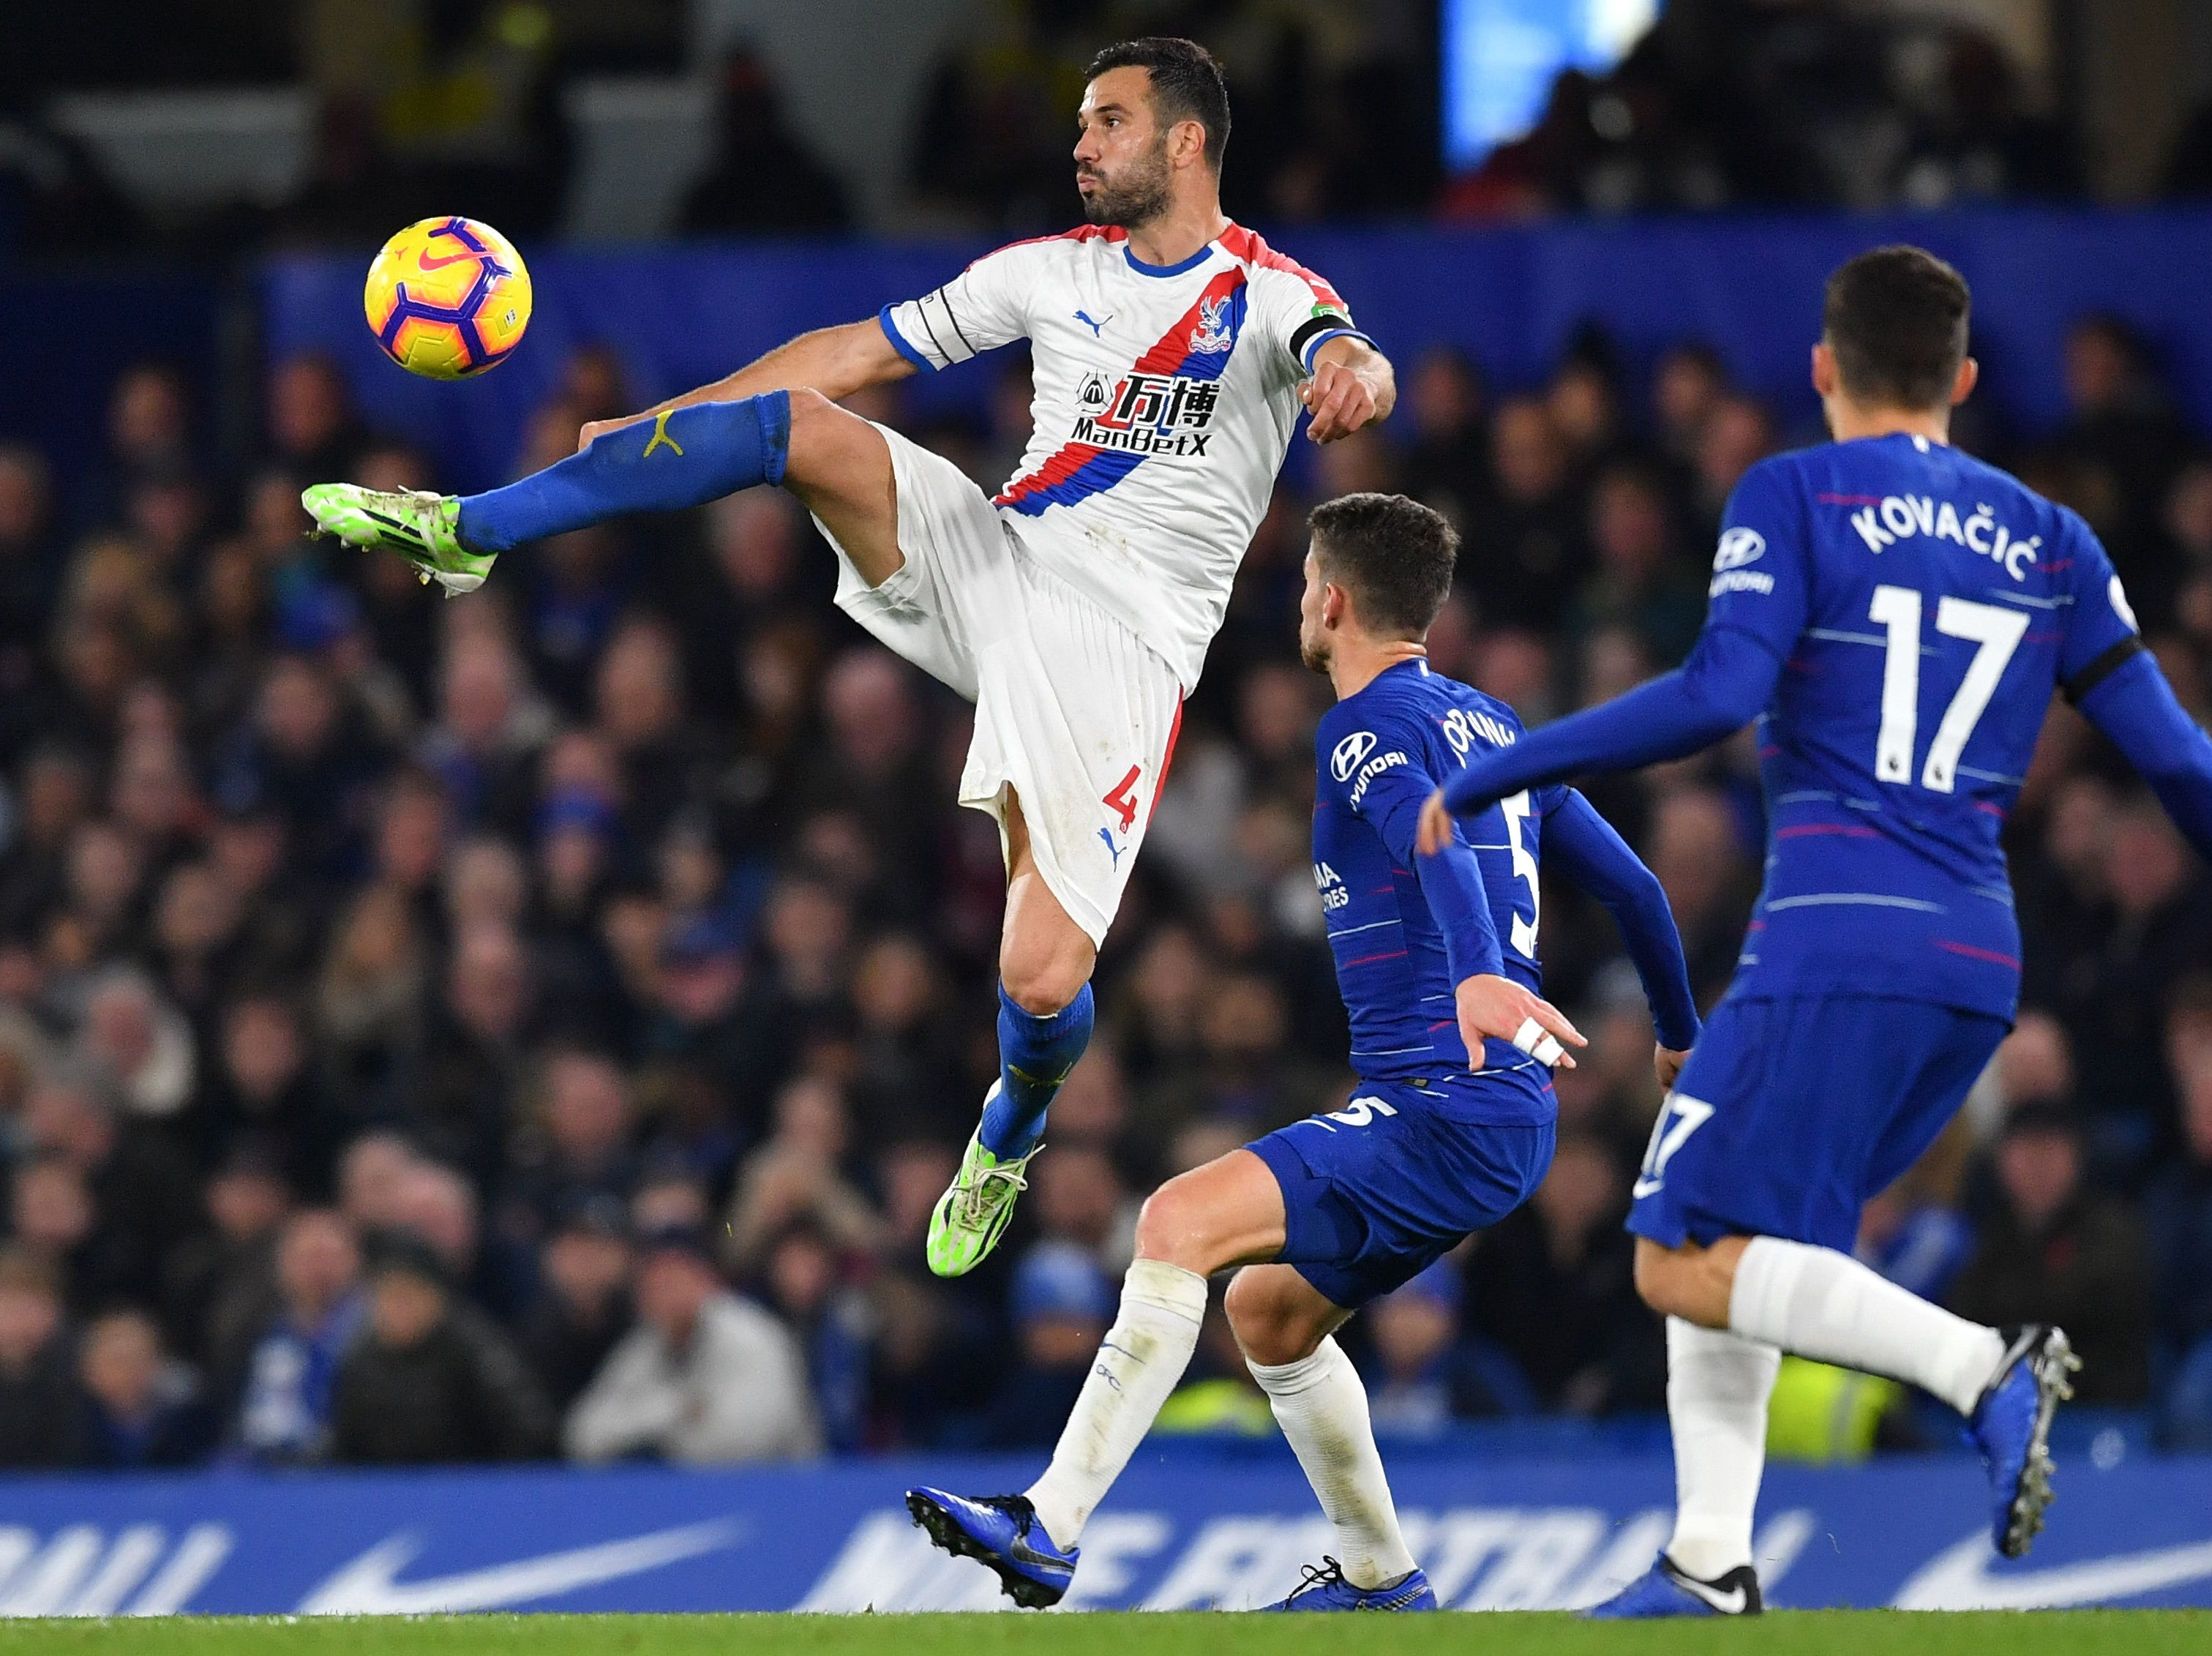 Crystal Palace's Luka Milivojevic jumps to control the ball against Chelsea.